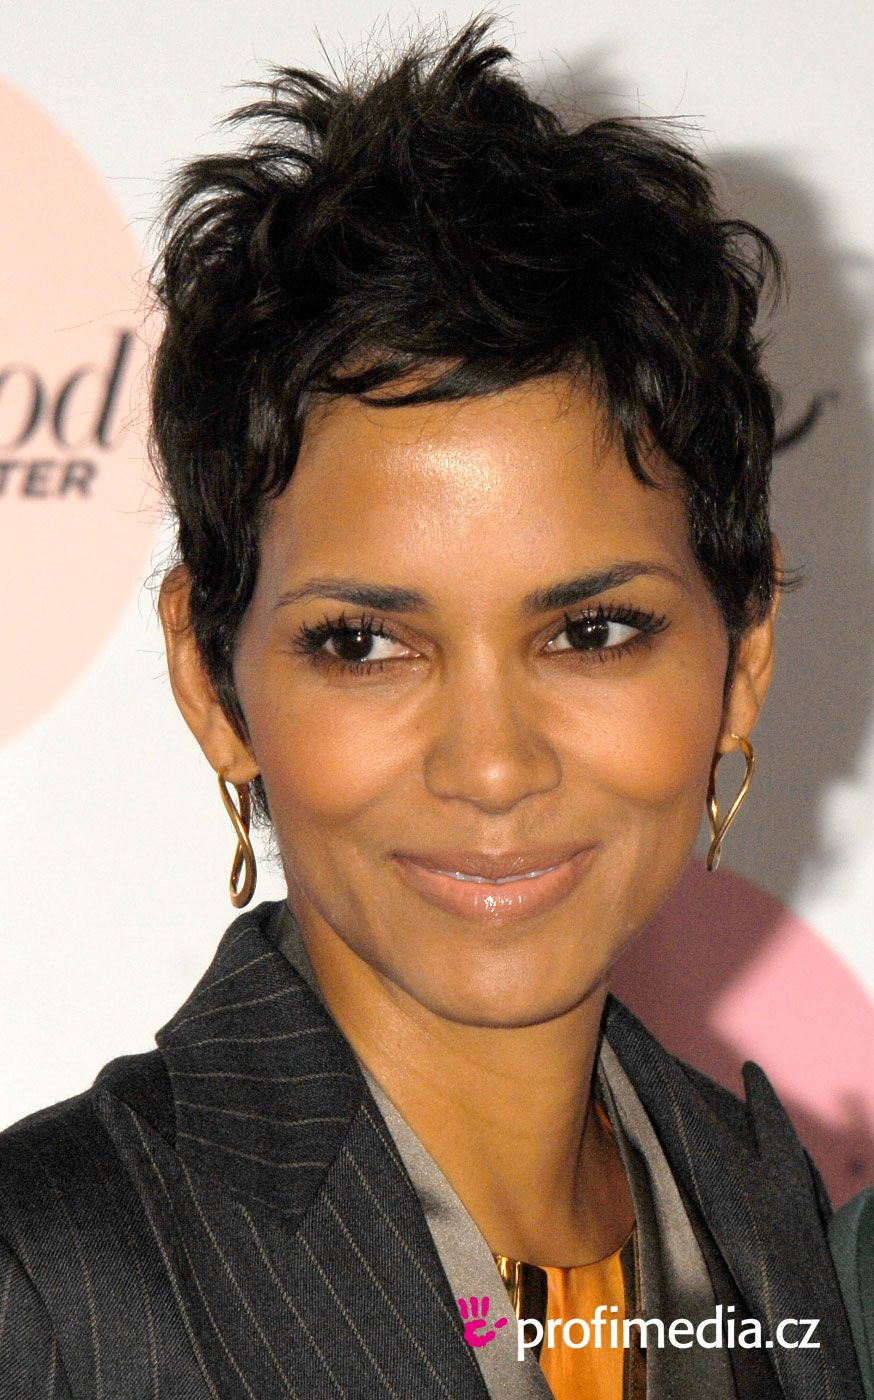 Hairstyle Ideas Upload Photo Free Halle Berry Hairstyles Prom Hairstyle Halle Berry